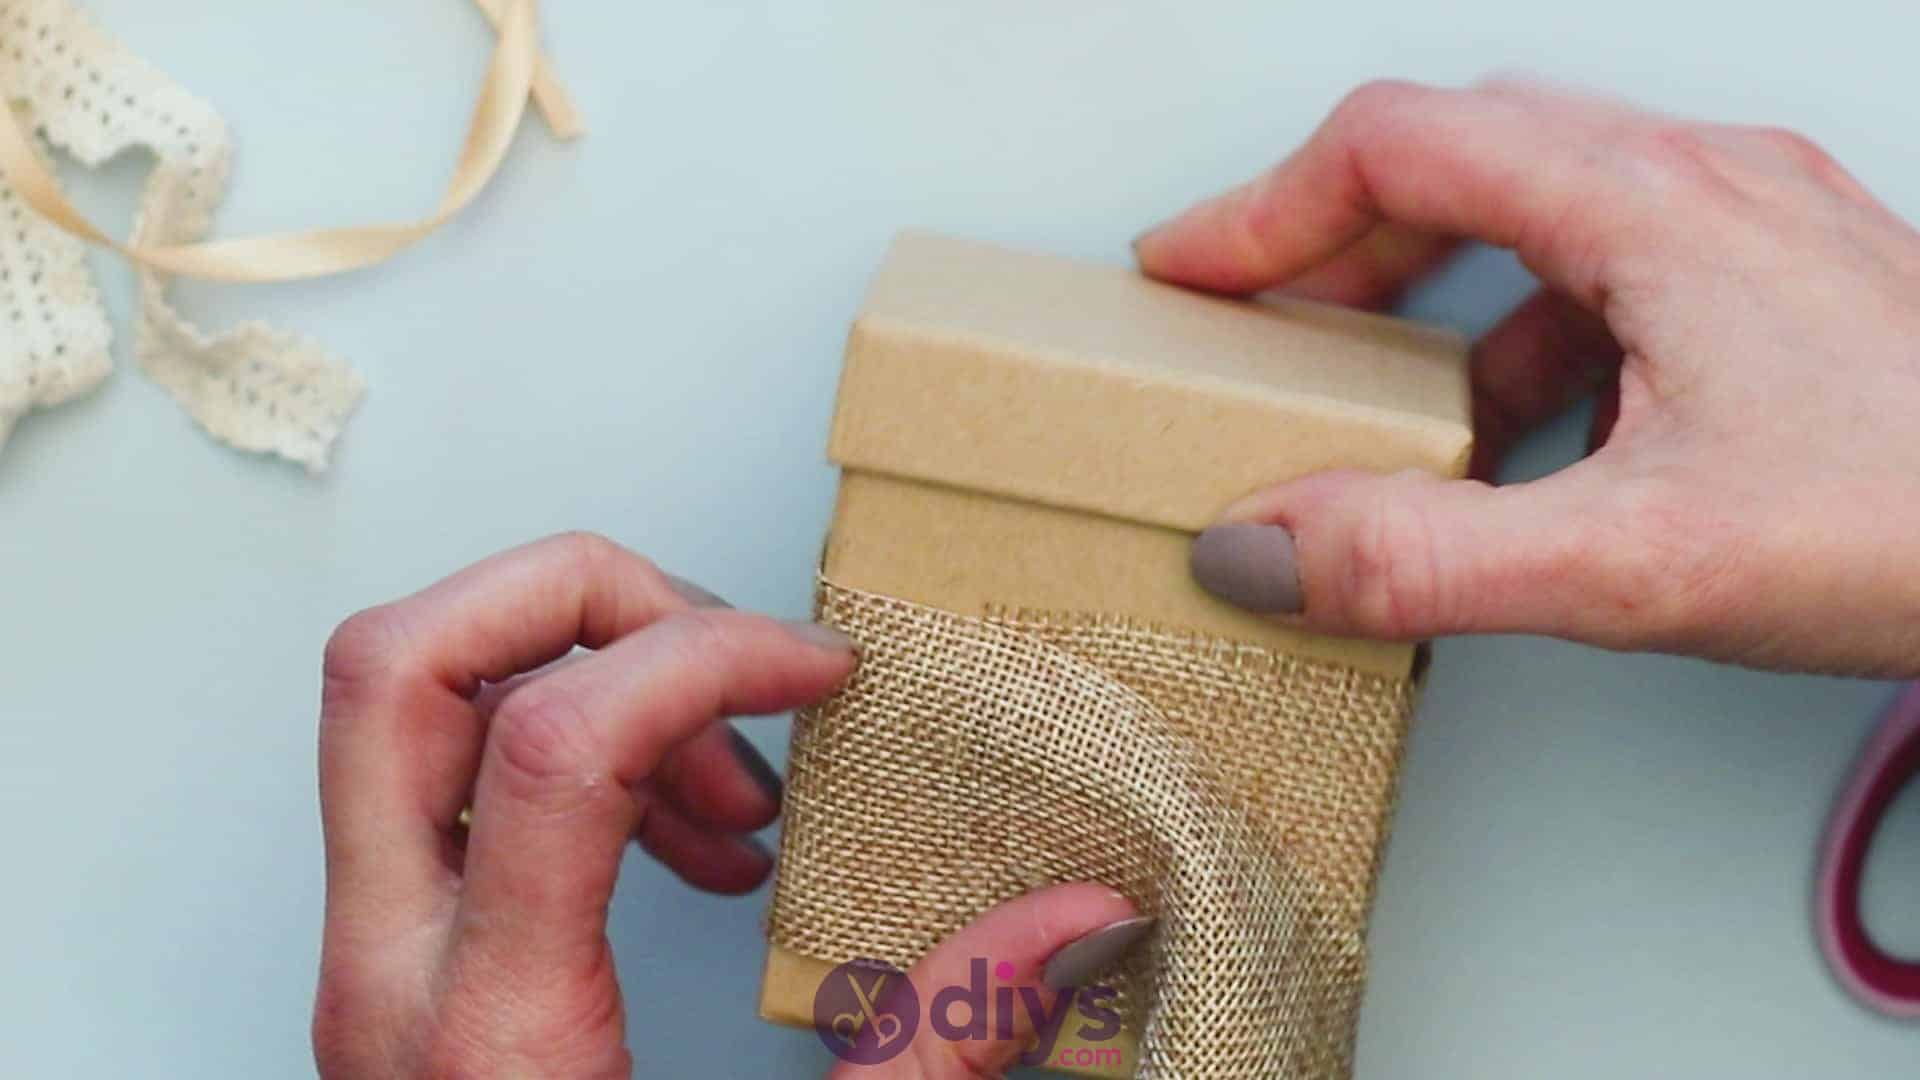 Diy jute gift box step 2c